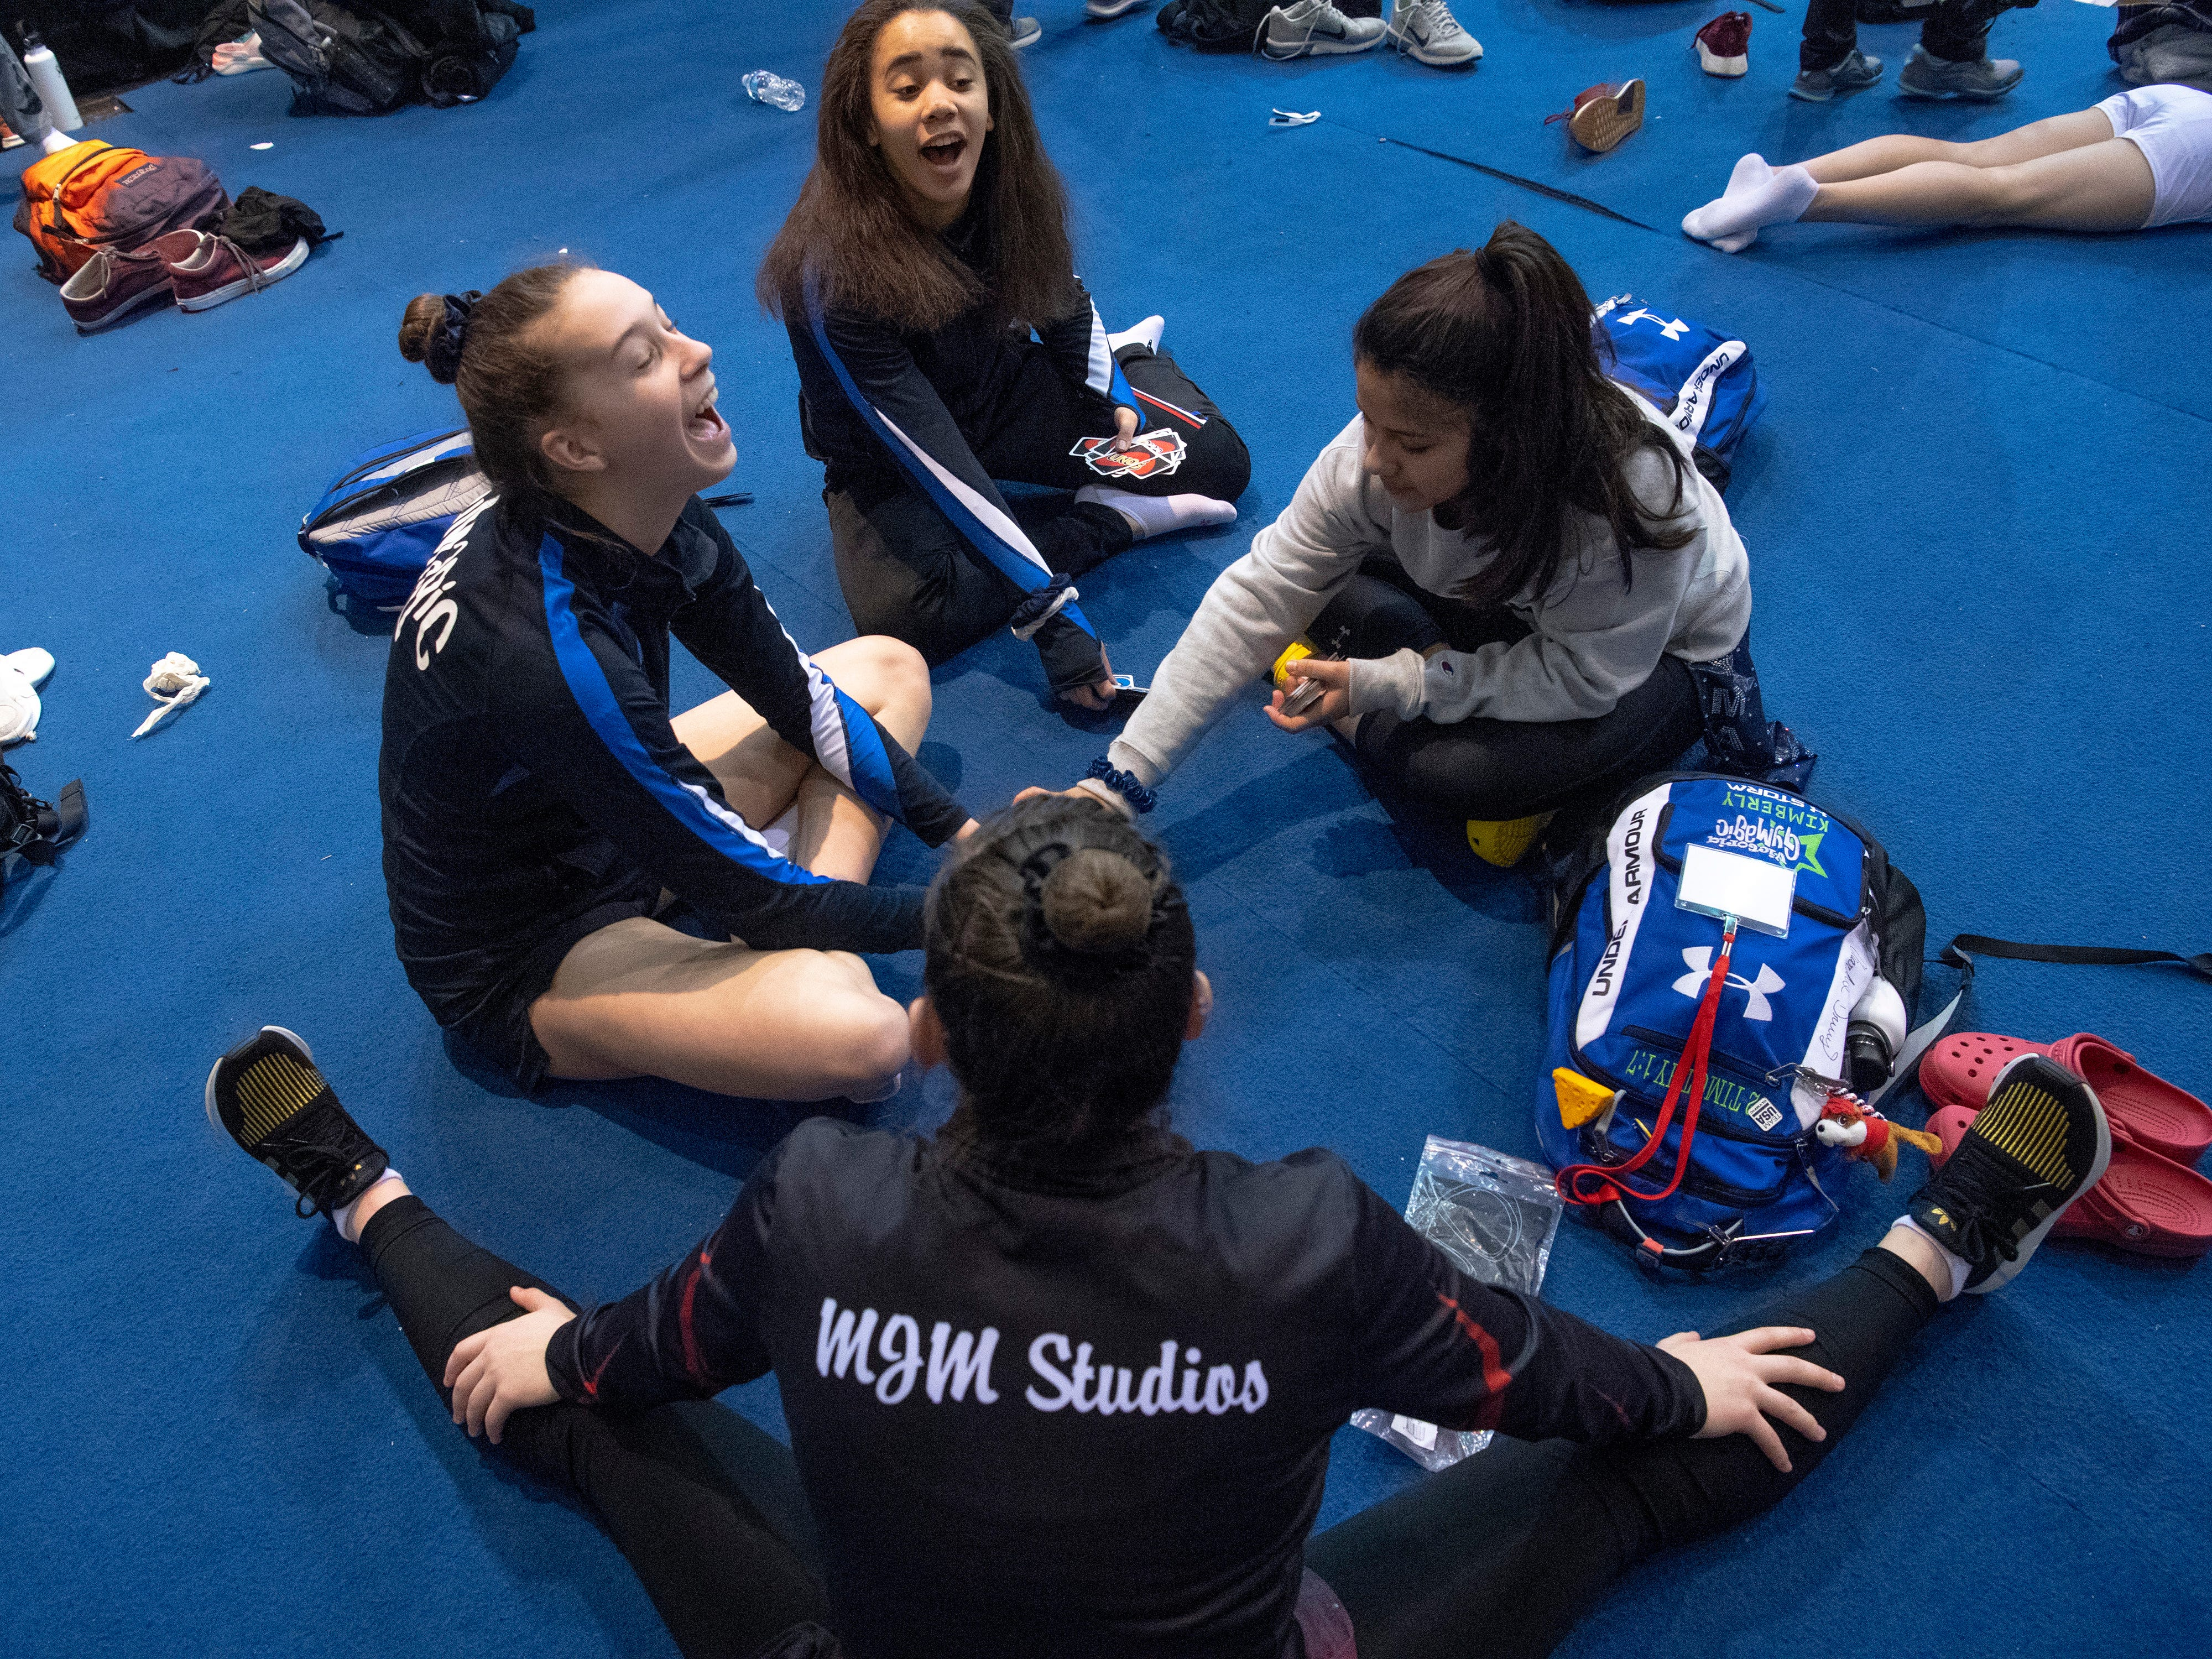 Competitors start a game of Uno in the warm-up area at the VIP Classic at the Old National Events Plaza Friday afternoon. The girls are, from bottom, Erin Dirr, 16, of Alexandria, Ky., Kimberly Tipton, 16, Krista McNary, 14, and Isabela Garza, 15, all of Victoria, Tex.